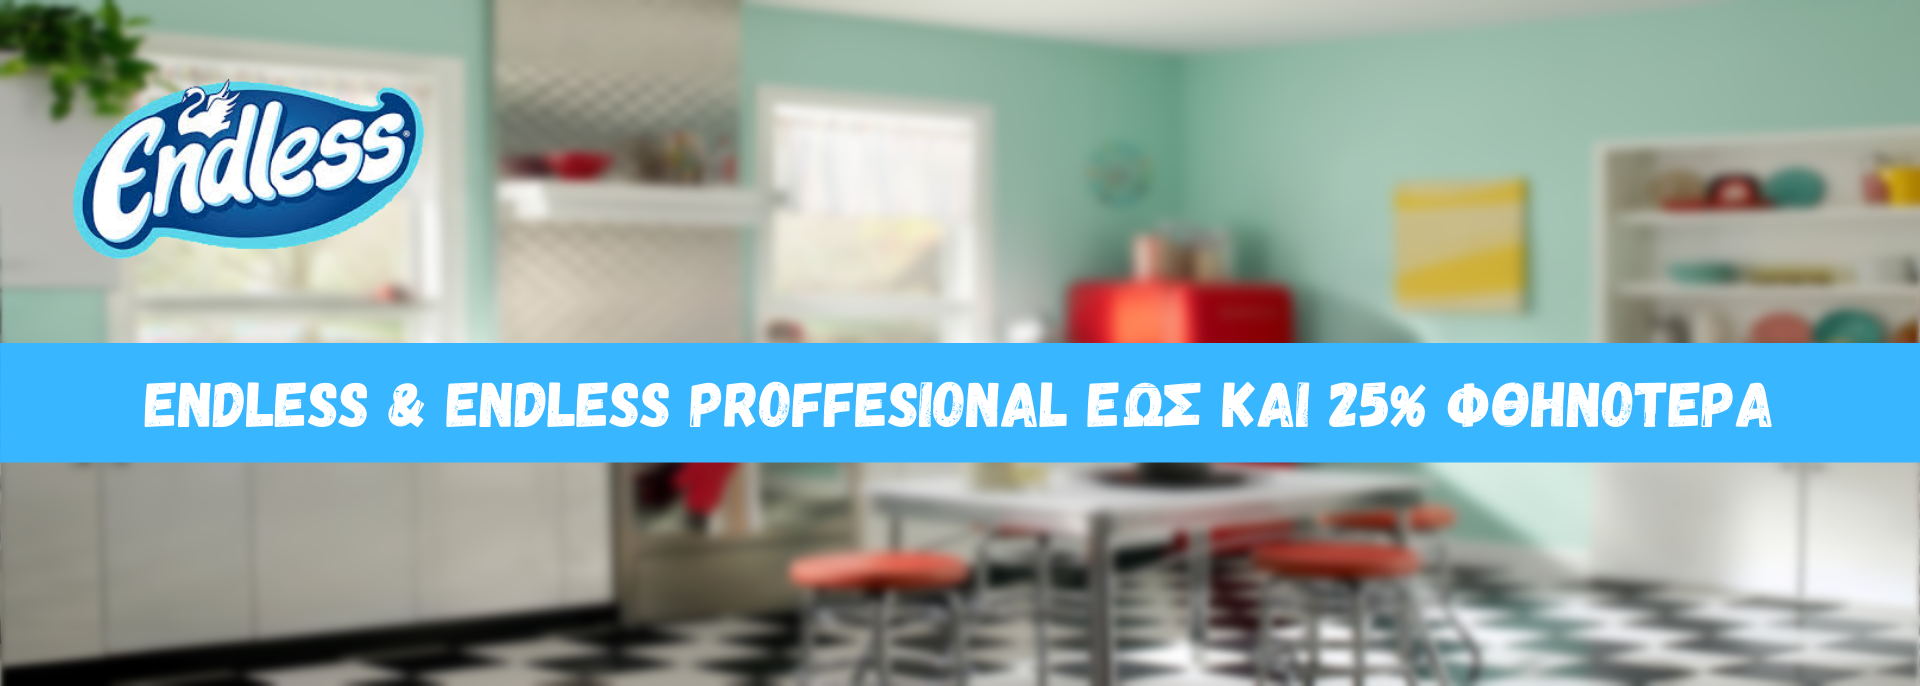 ENDLESS HOUSEHOLD & PROFESSIONAL PRODUCTS